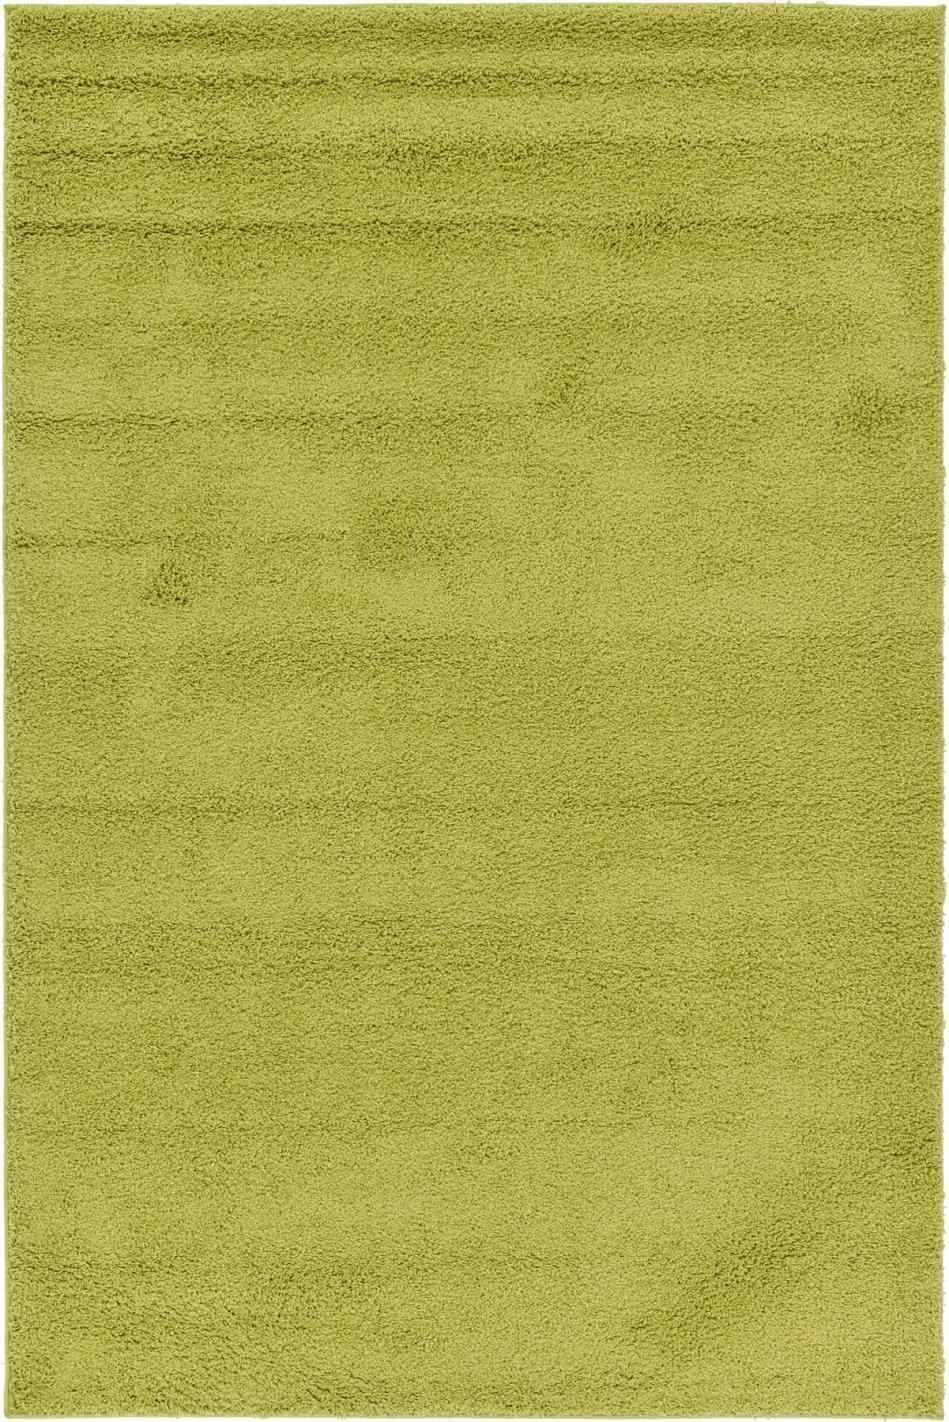 Green Floor Rugs